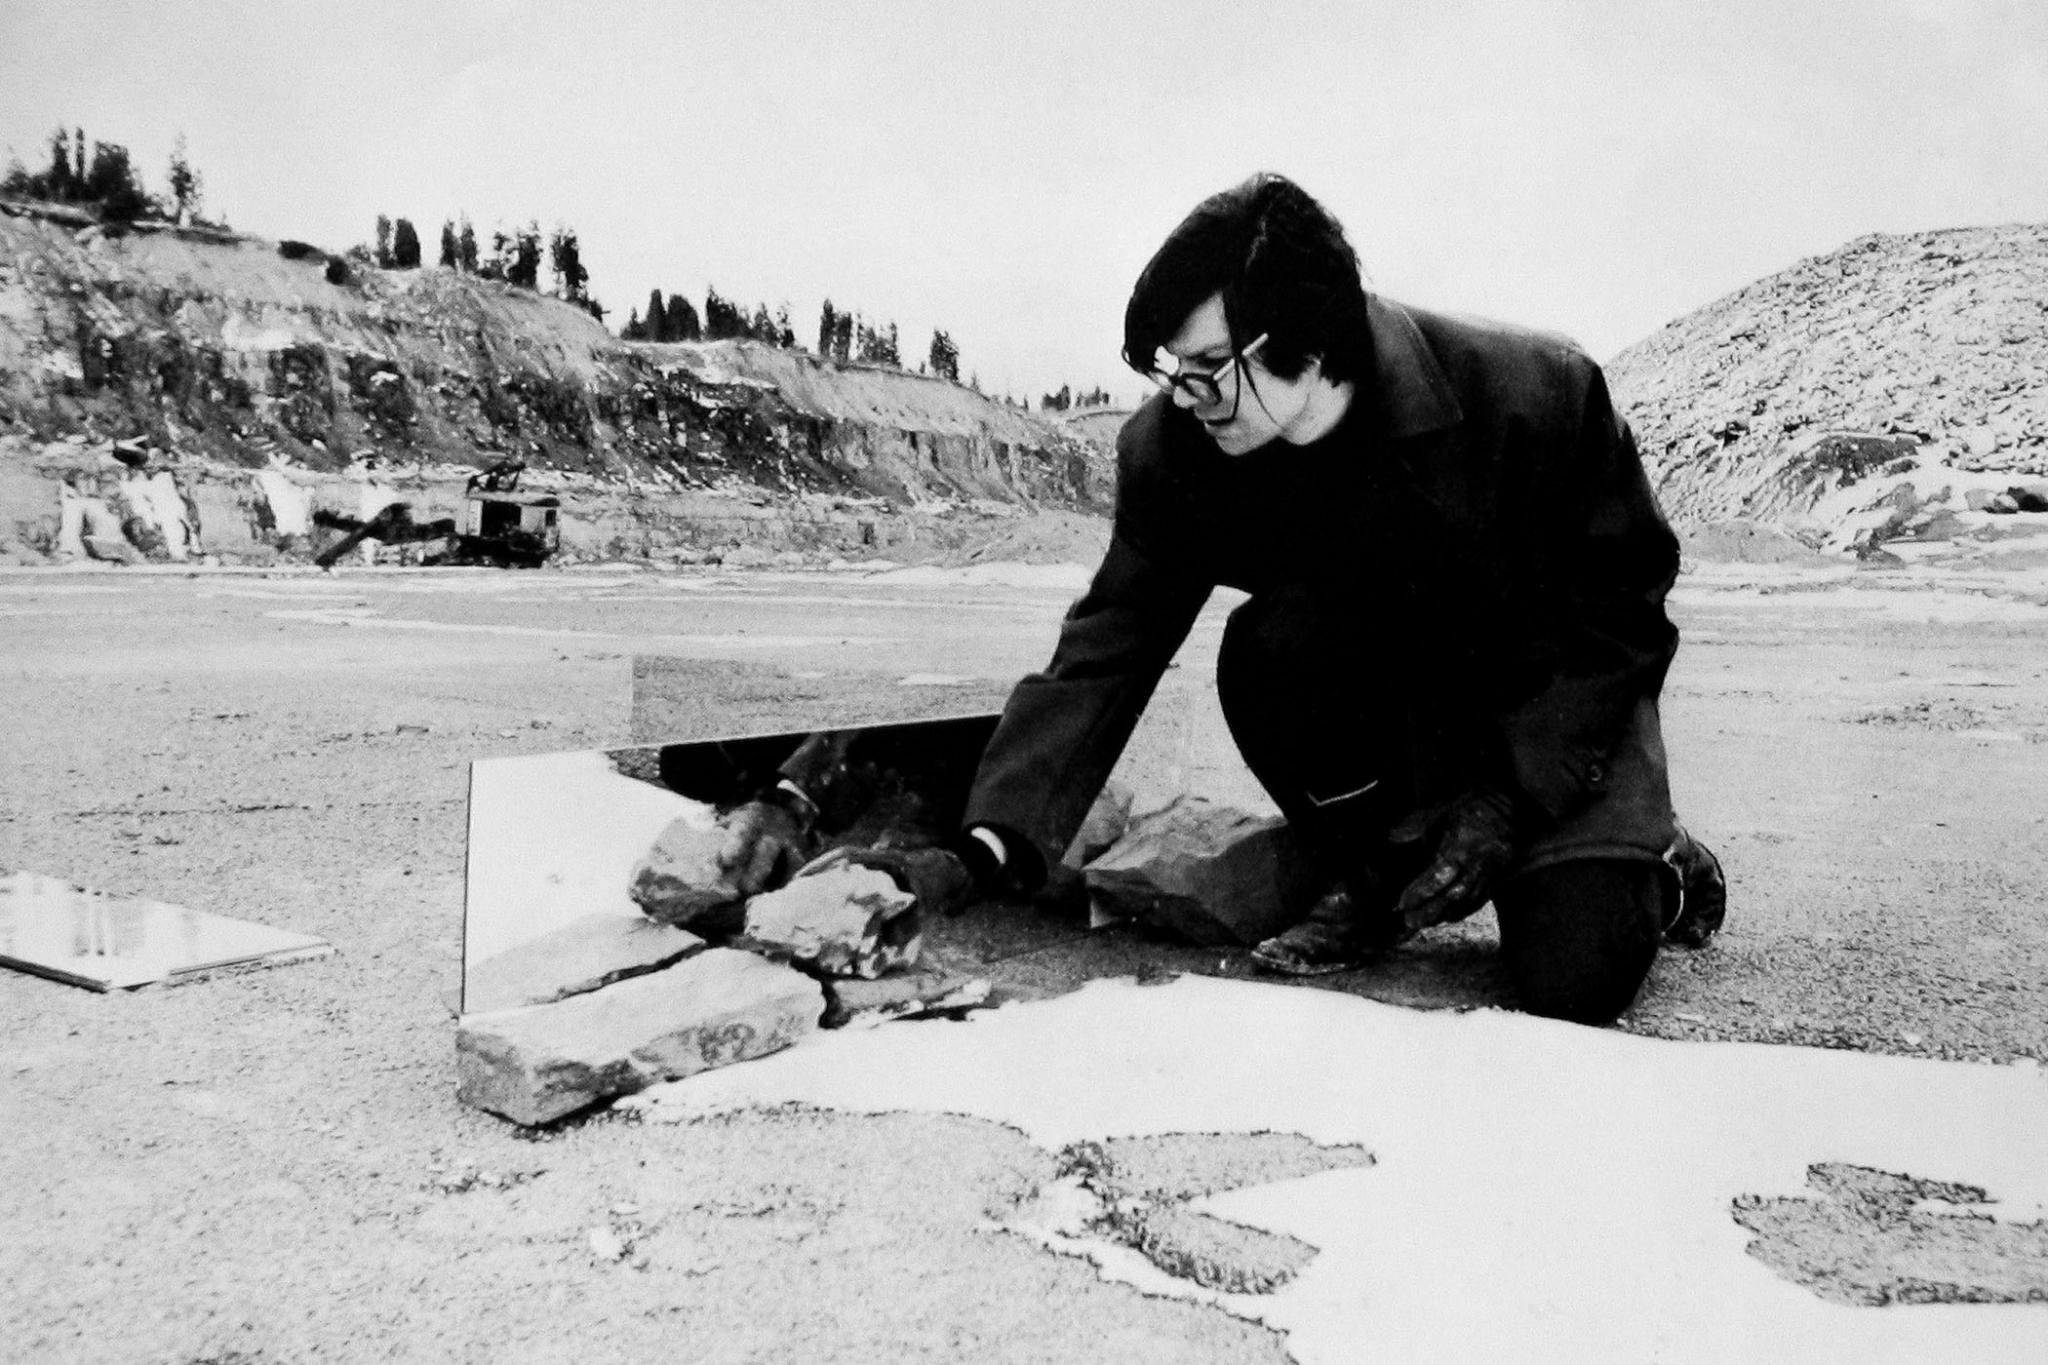 Robert Smithson working on an outdoor mirror displacement piece in New Jersey.